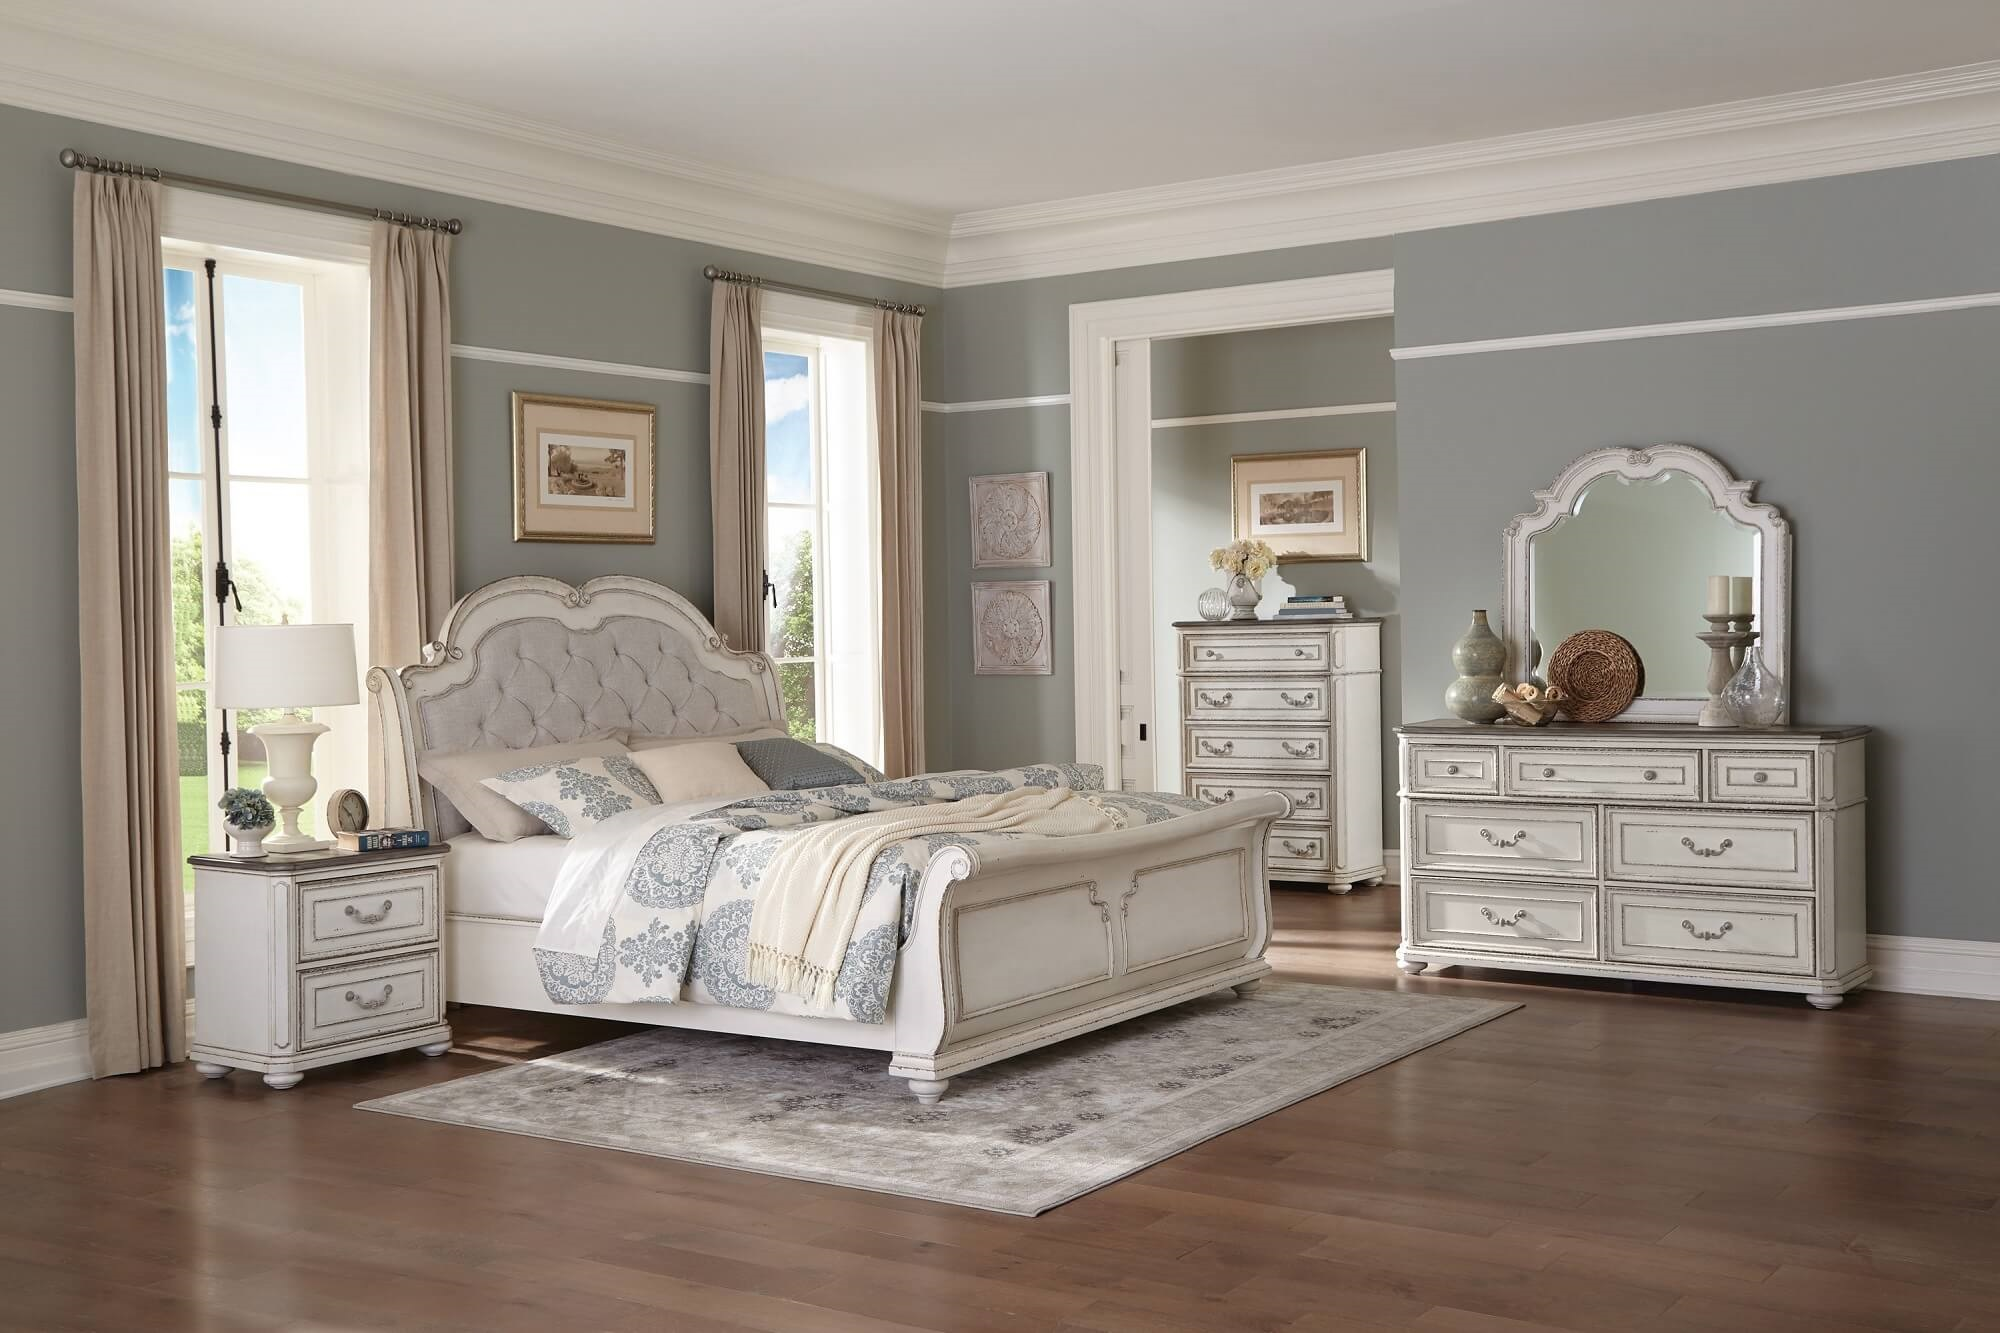 4 Piece Willowick Sleigh Bedroom Set Antique White